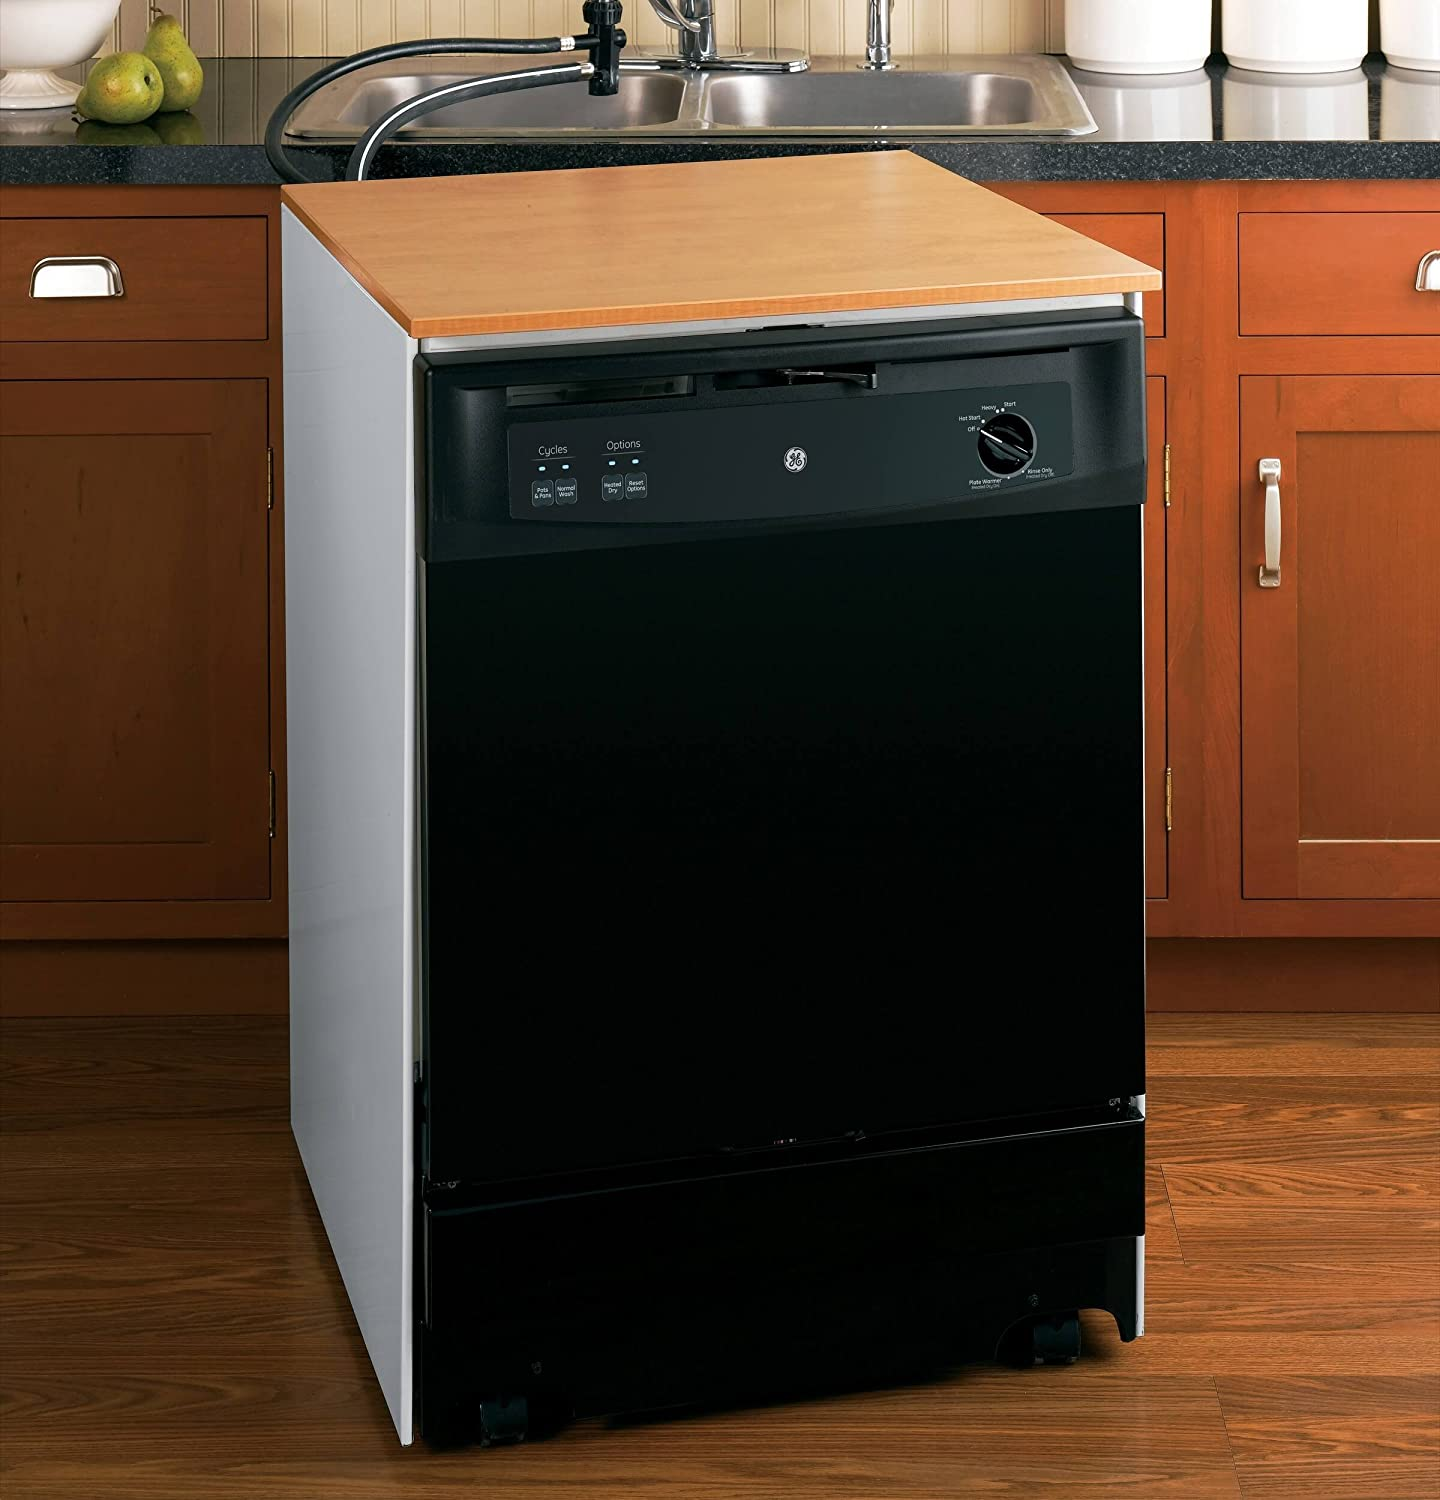 "Amazon.com: GE GSC3500DBB 24"" Black Portable Full Console Dishwasher -  Energy Star: Appliances"